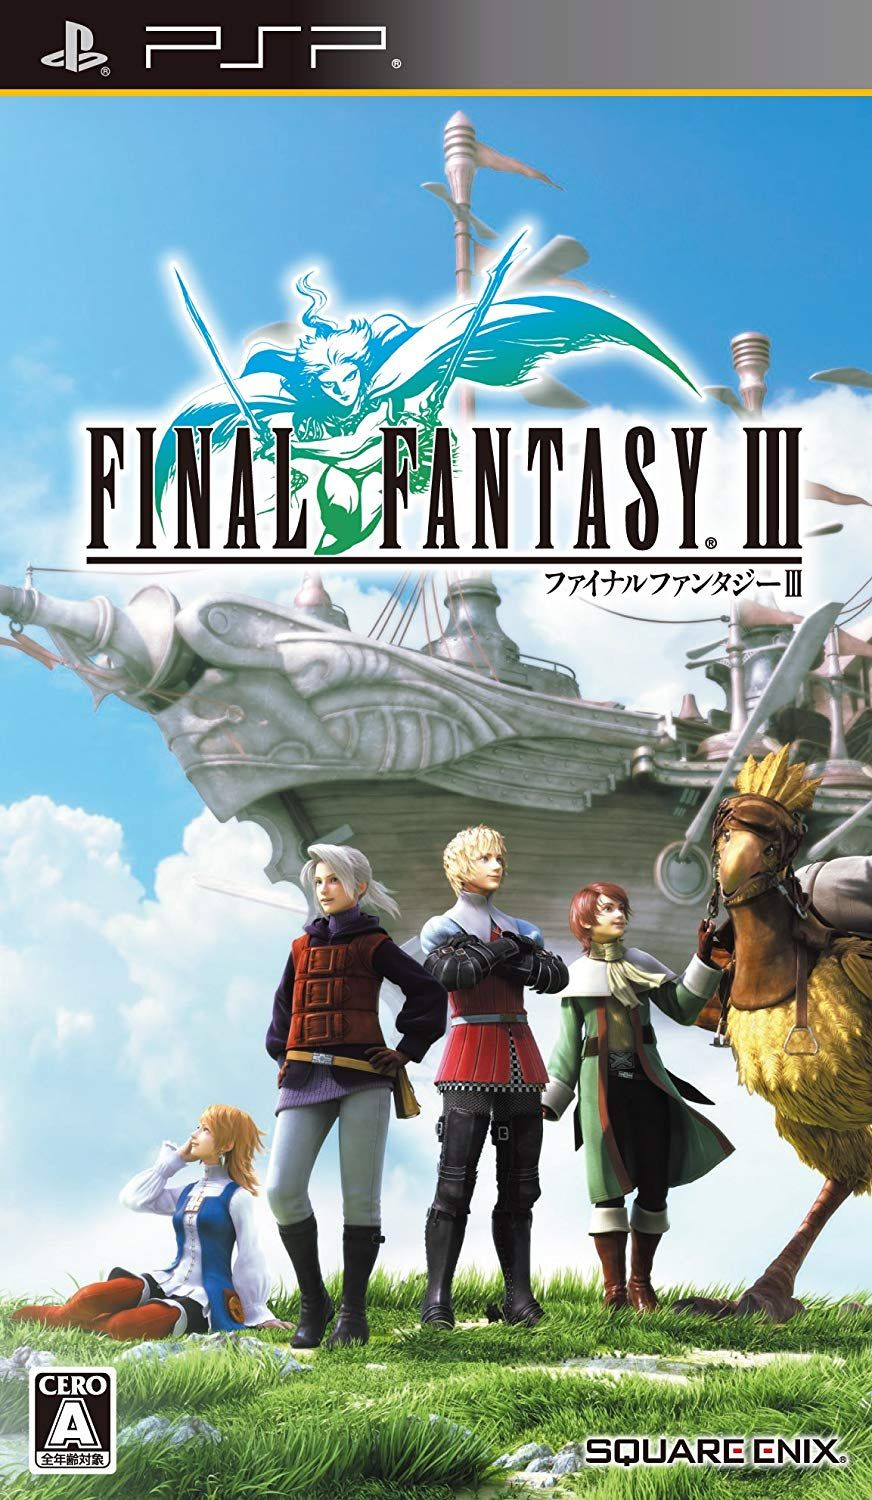 Final Fantasy Iii Psp Gaming With Images Final Fantasy